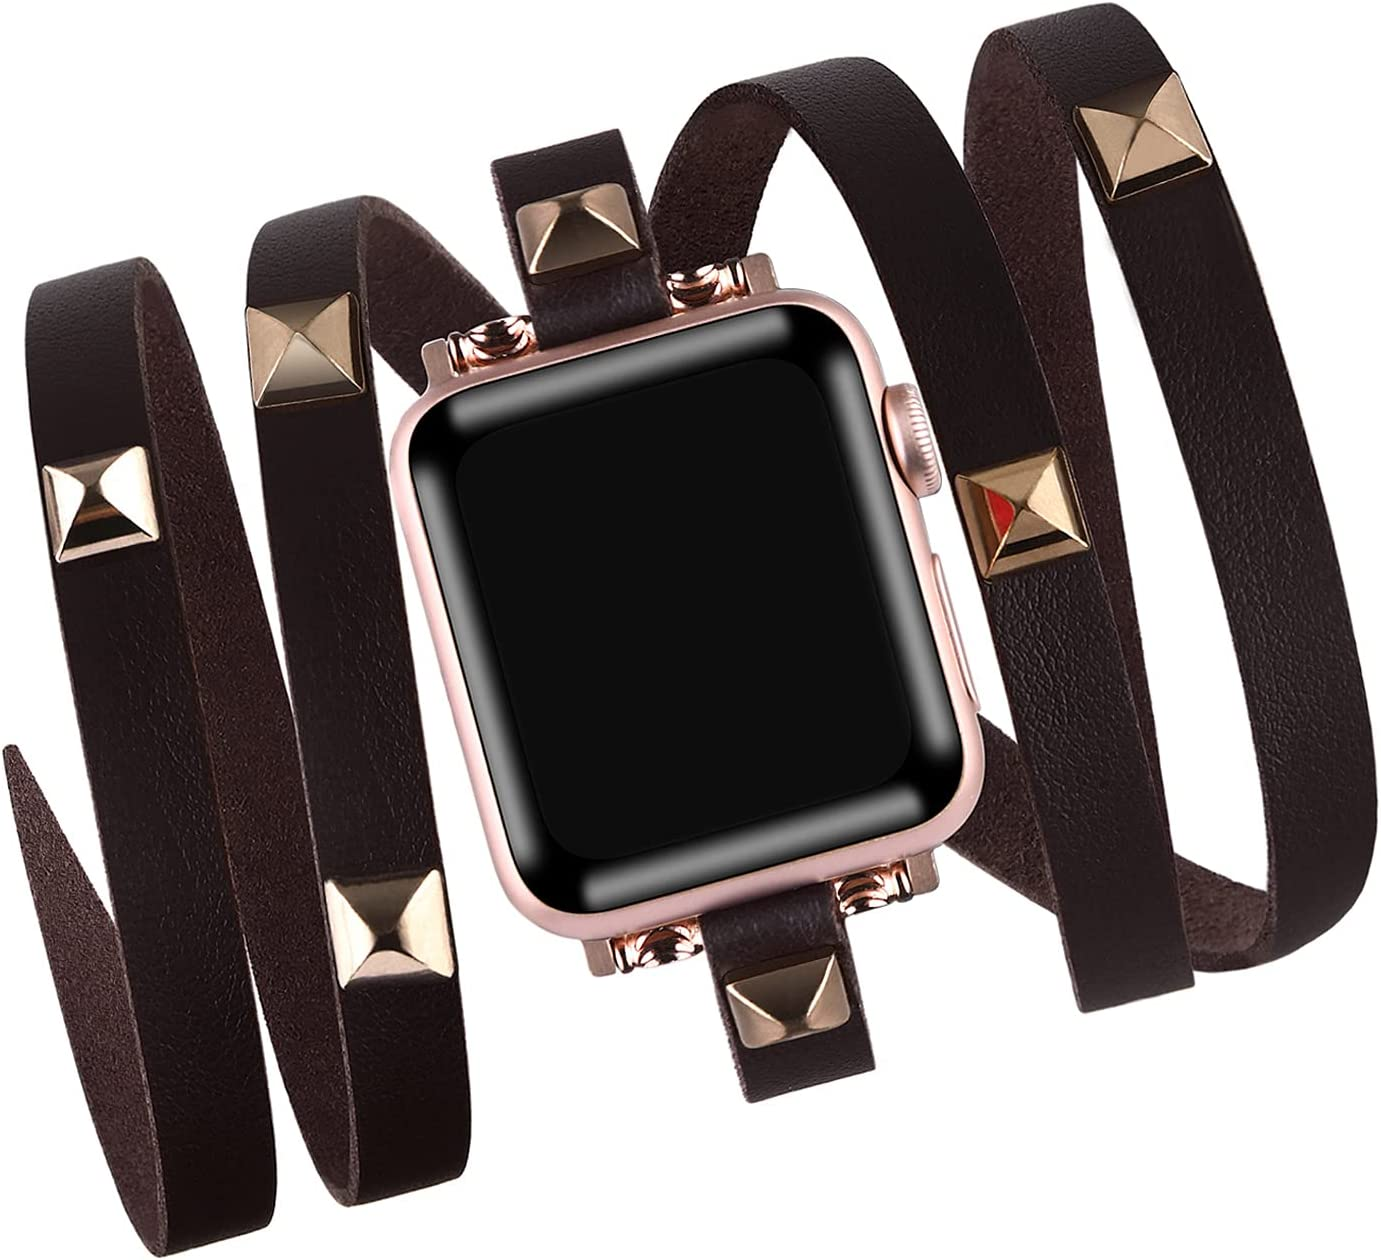 Vikoros Hip Hop Leather Bead Bracelet Compatible with Apple Watch Bands 38mm 40mm 42mm 44mm iwatch Series SE 6 5 4 3 2 1 for Women Mens, Fashion Charm Bracelets Bangle Jewelry Wristband Strap